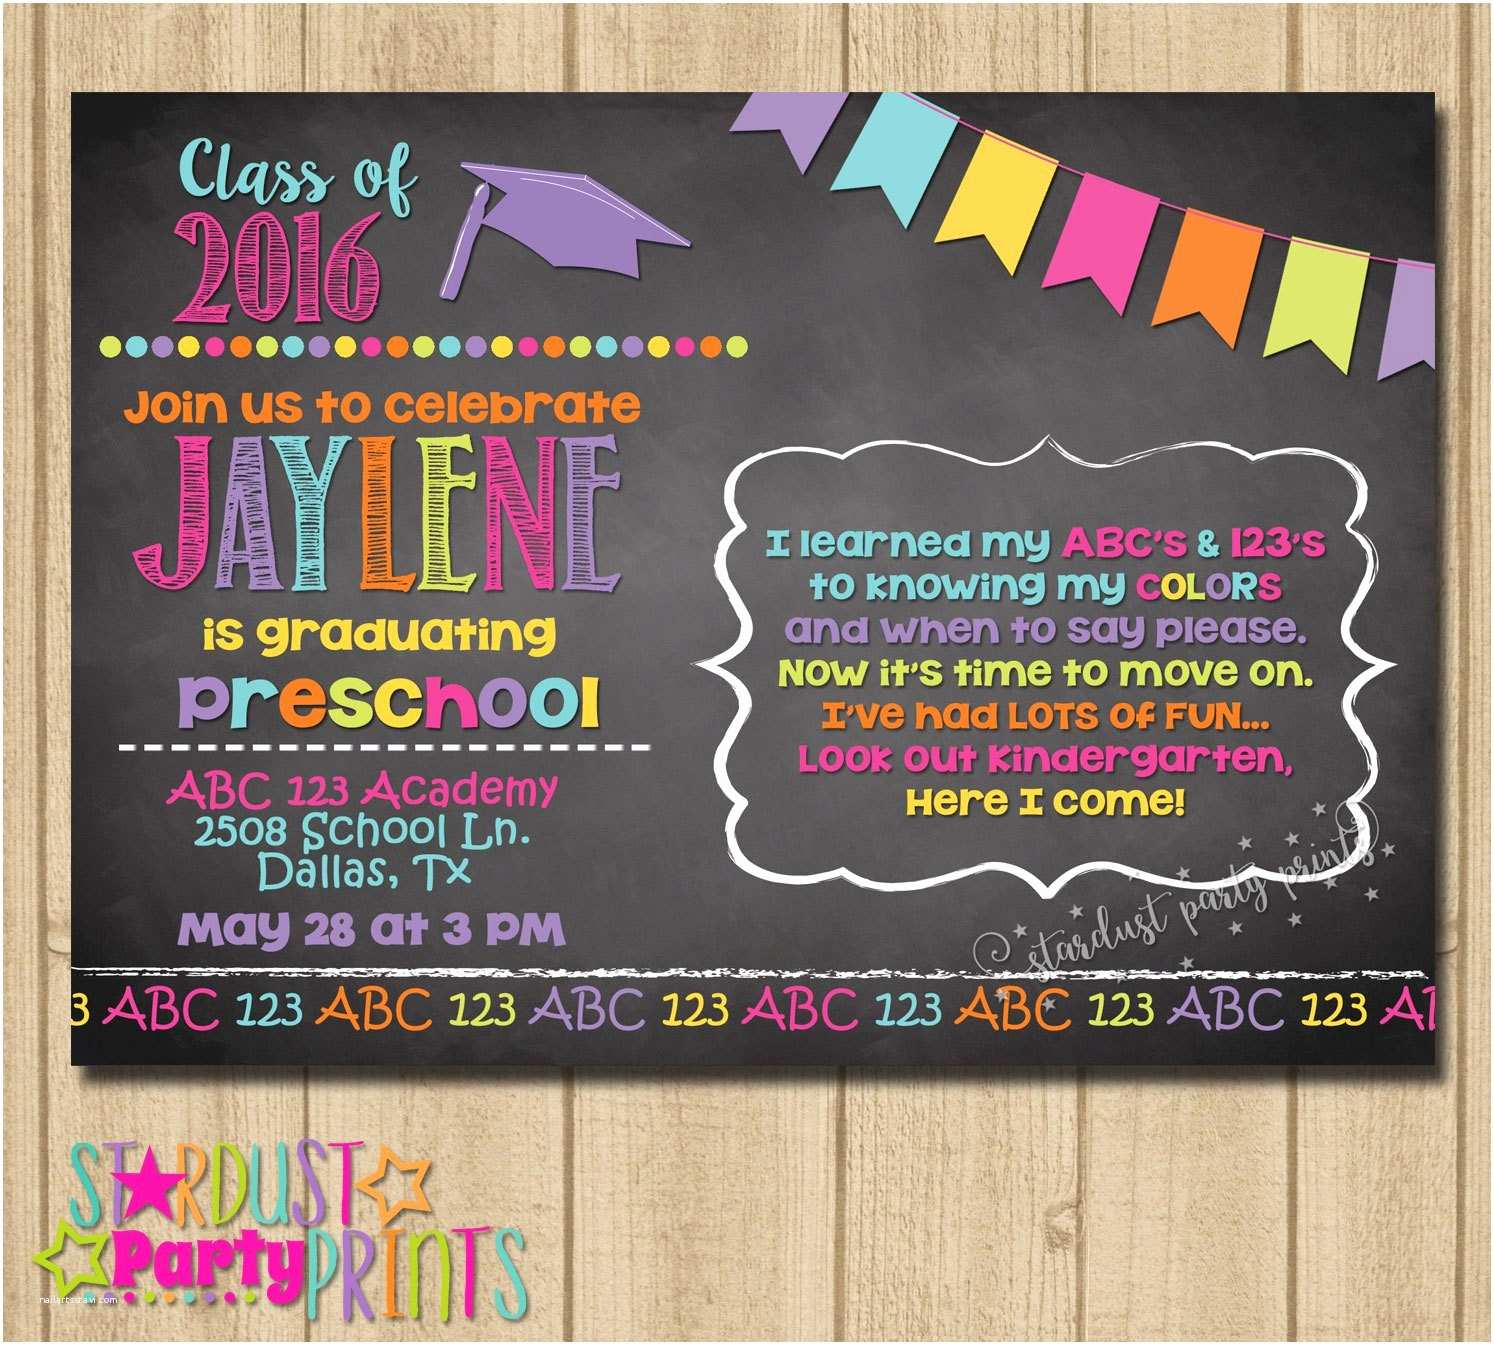 Kindergarten Graduation Invitations Kinder Graduation Invitation Preschool Graduation Invitation